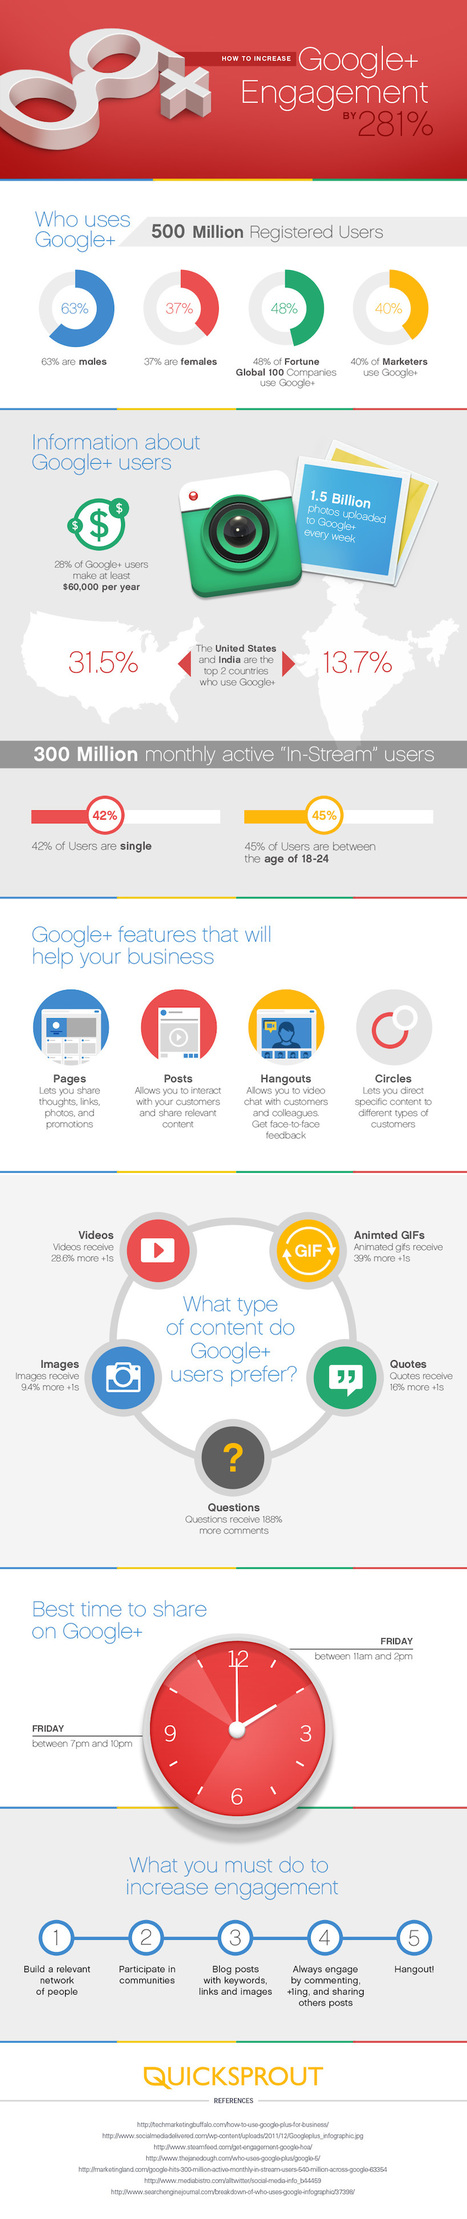 How to Increase Your Google+ Engagement by 281% | Business Marketing & The Blog | Scoop.it